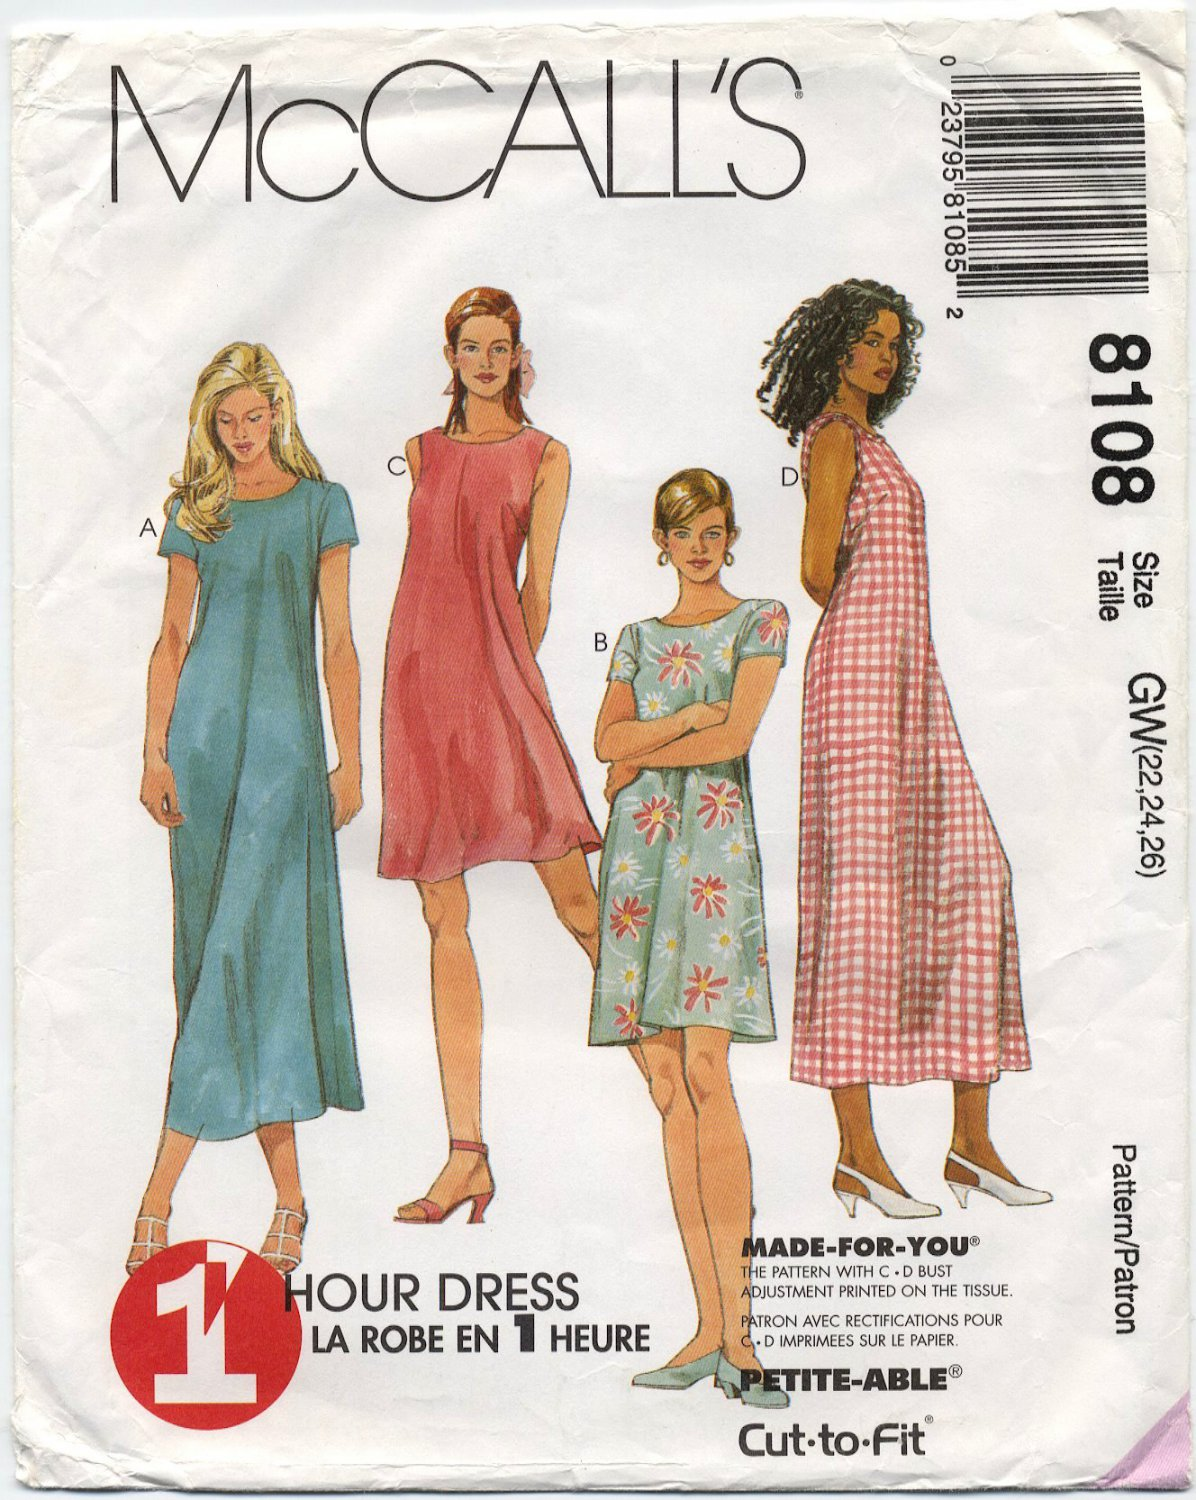 McCall's 8108 Dress in Two Lengths - Sewing Pattern - Misses' 22 24 26 with Bust Adjustment